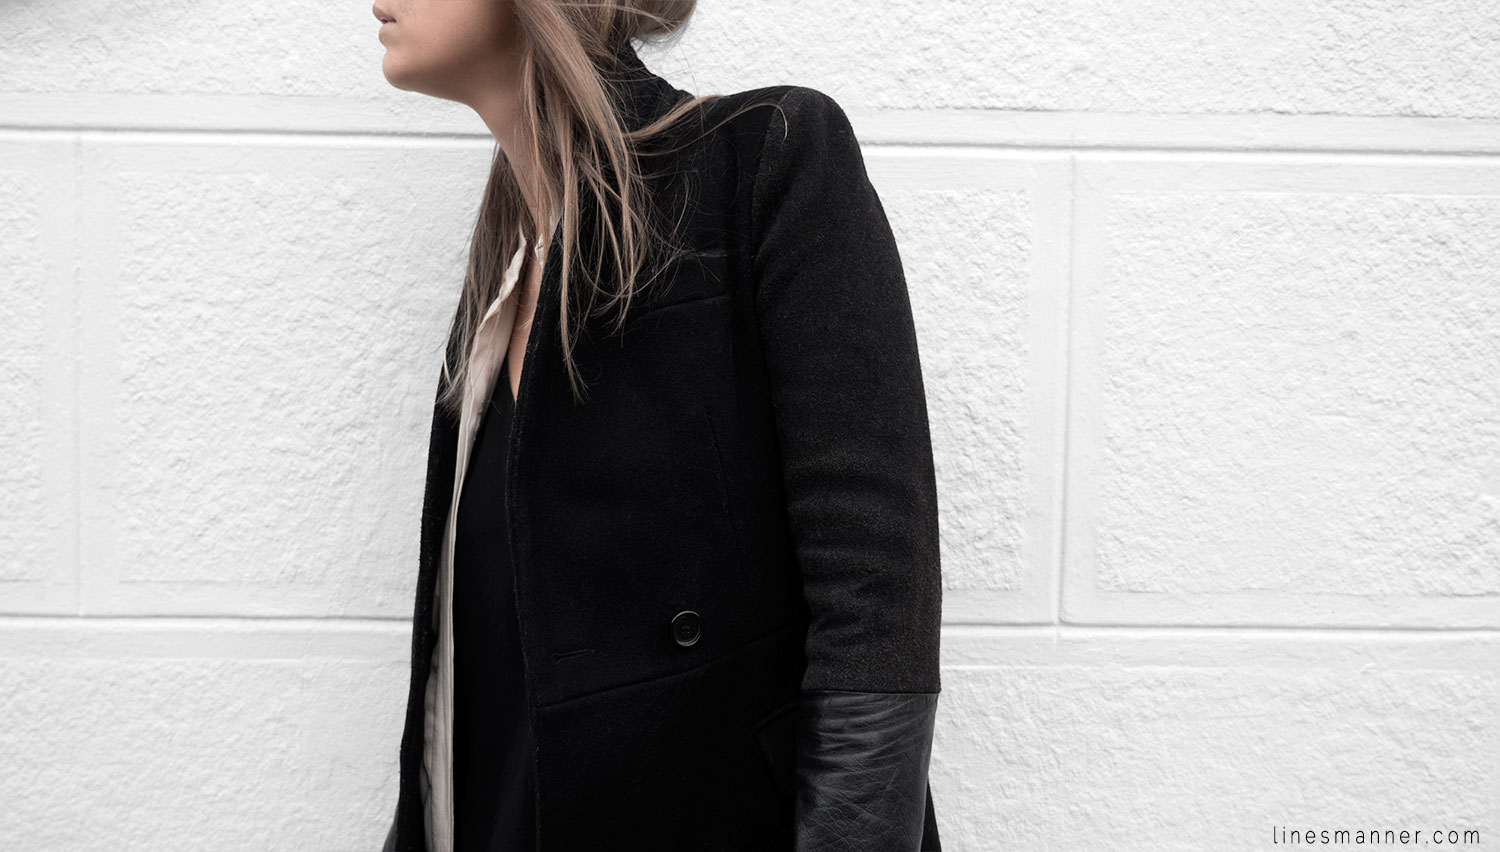 Lines-Manner-Timeless-Comfort-Essentials-Monochrome-Trend-Minimal-Textures-Fall-Leather-Details-Simplicity-Modern-Basics-Outfit-Structure-Relaxed-Leather-Luxurious-Sophistication-13